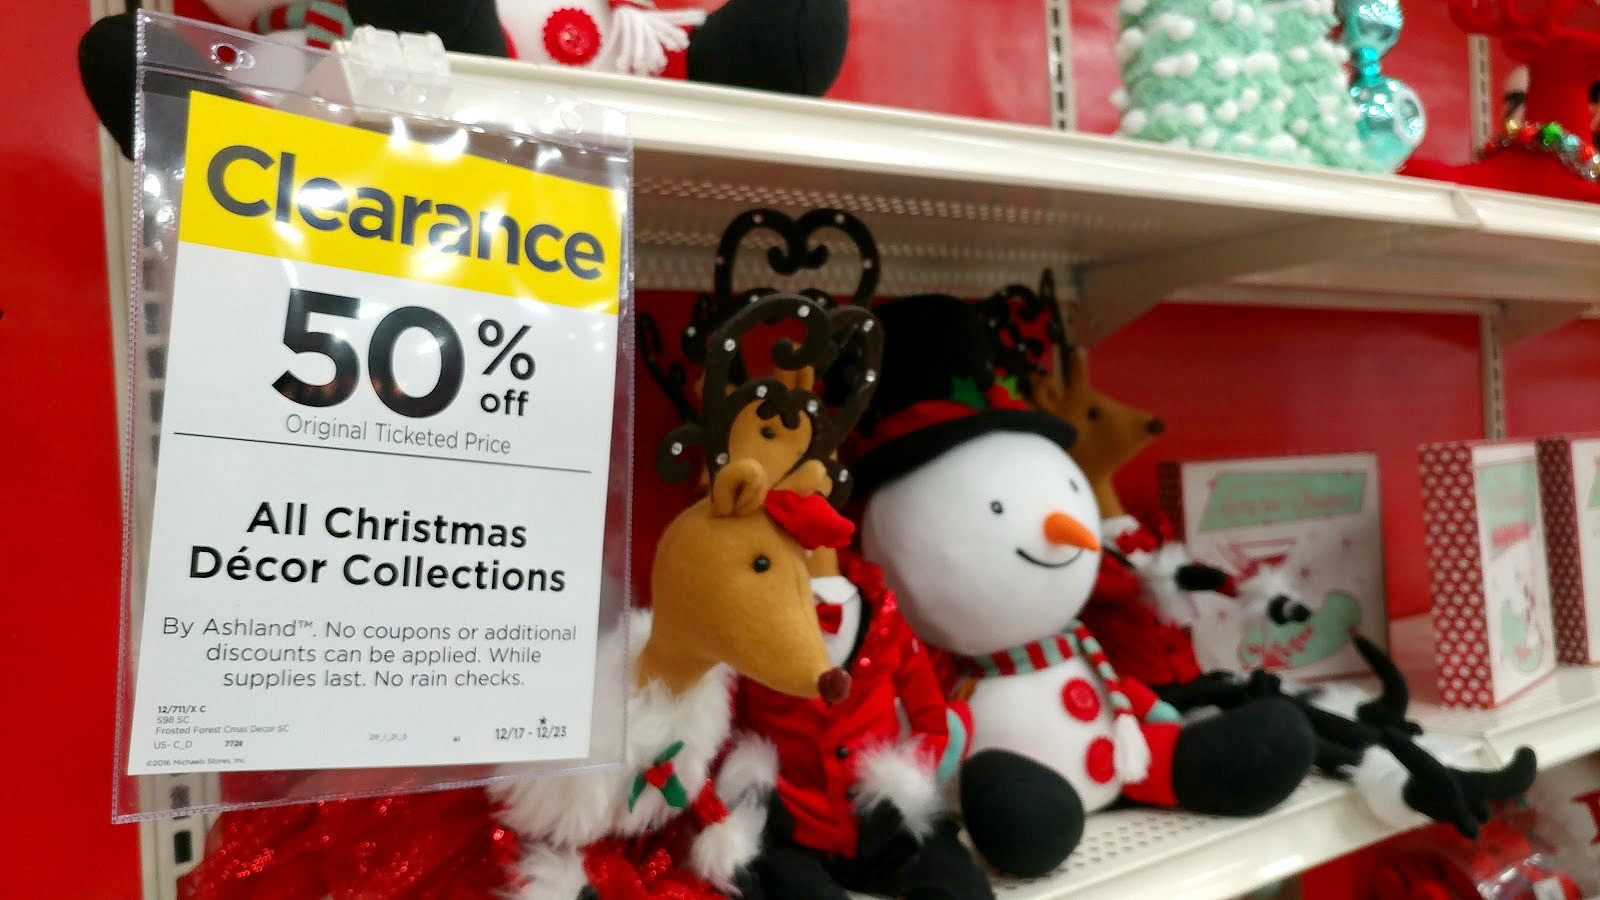 c5b58b73fe41a 13 Tips to Make the Most of Holiday Clearance Sales - The Krazy Coupon Lady